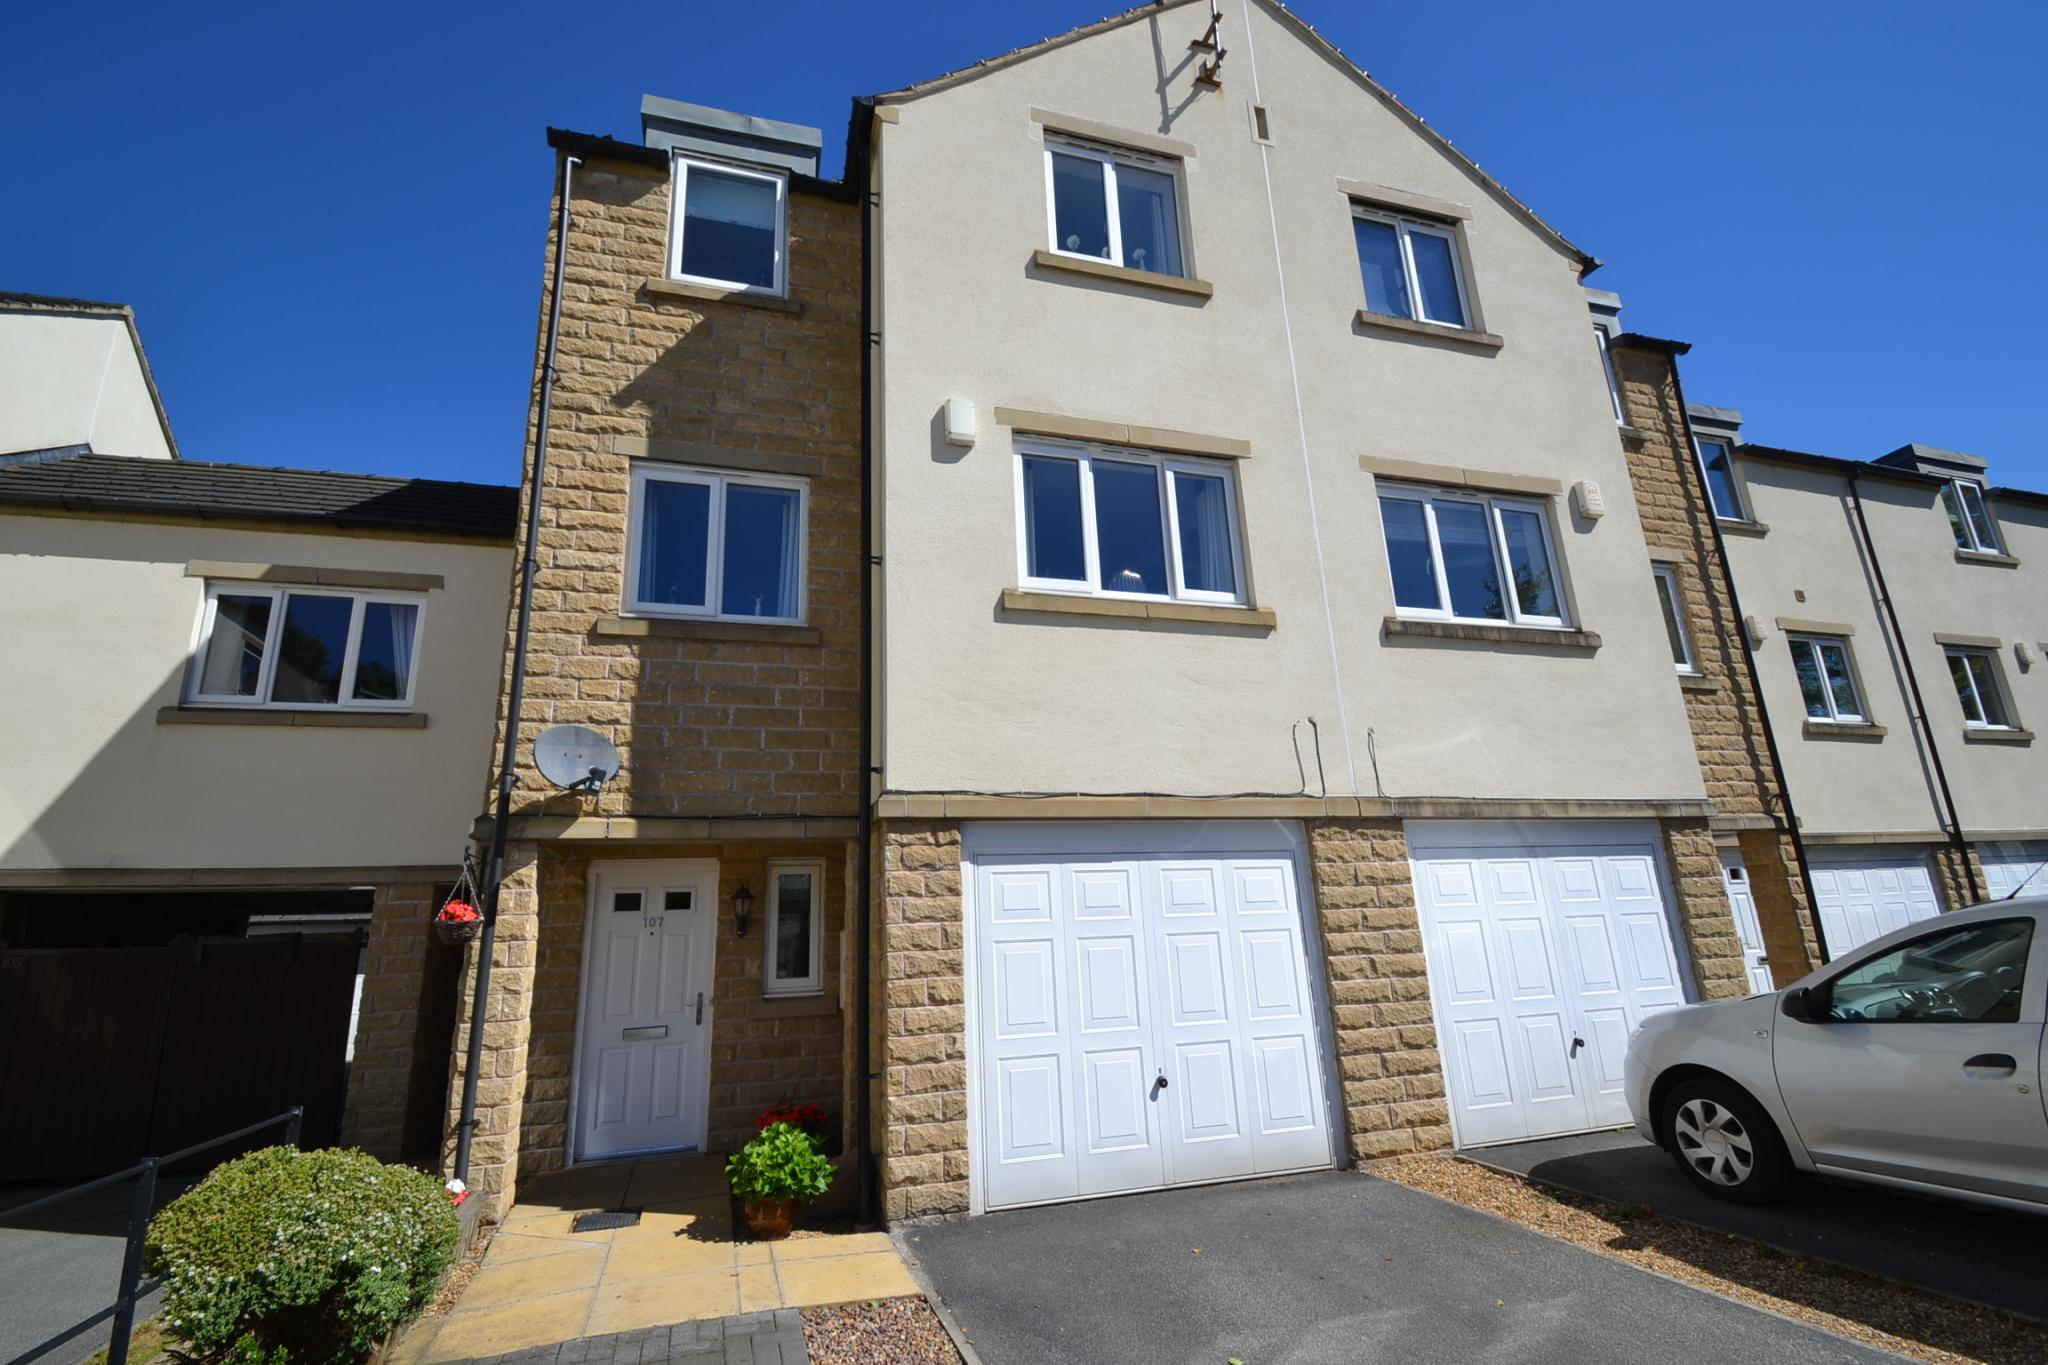 4 Bedroom End Terraced House For Sale - Photograph 1